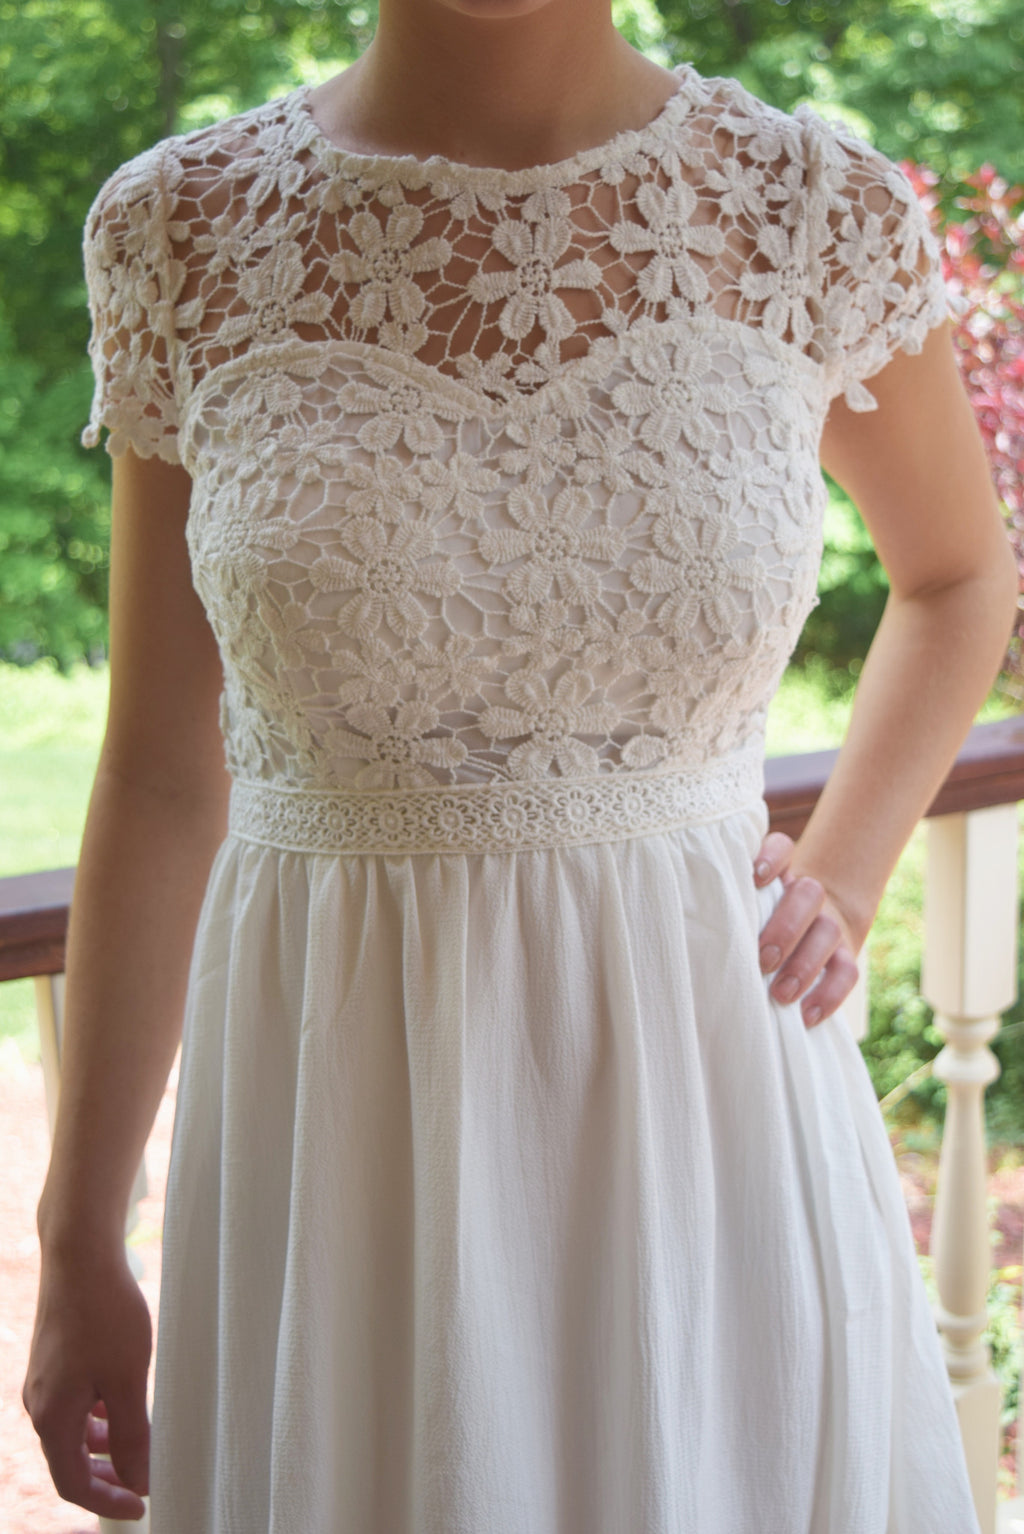 White Floral Lace Dress - Mint Pop Shop